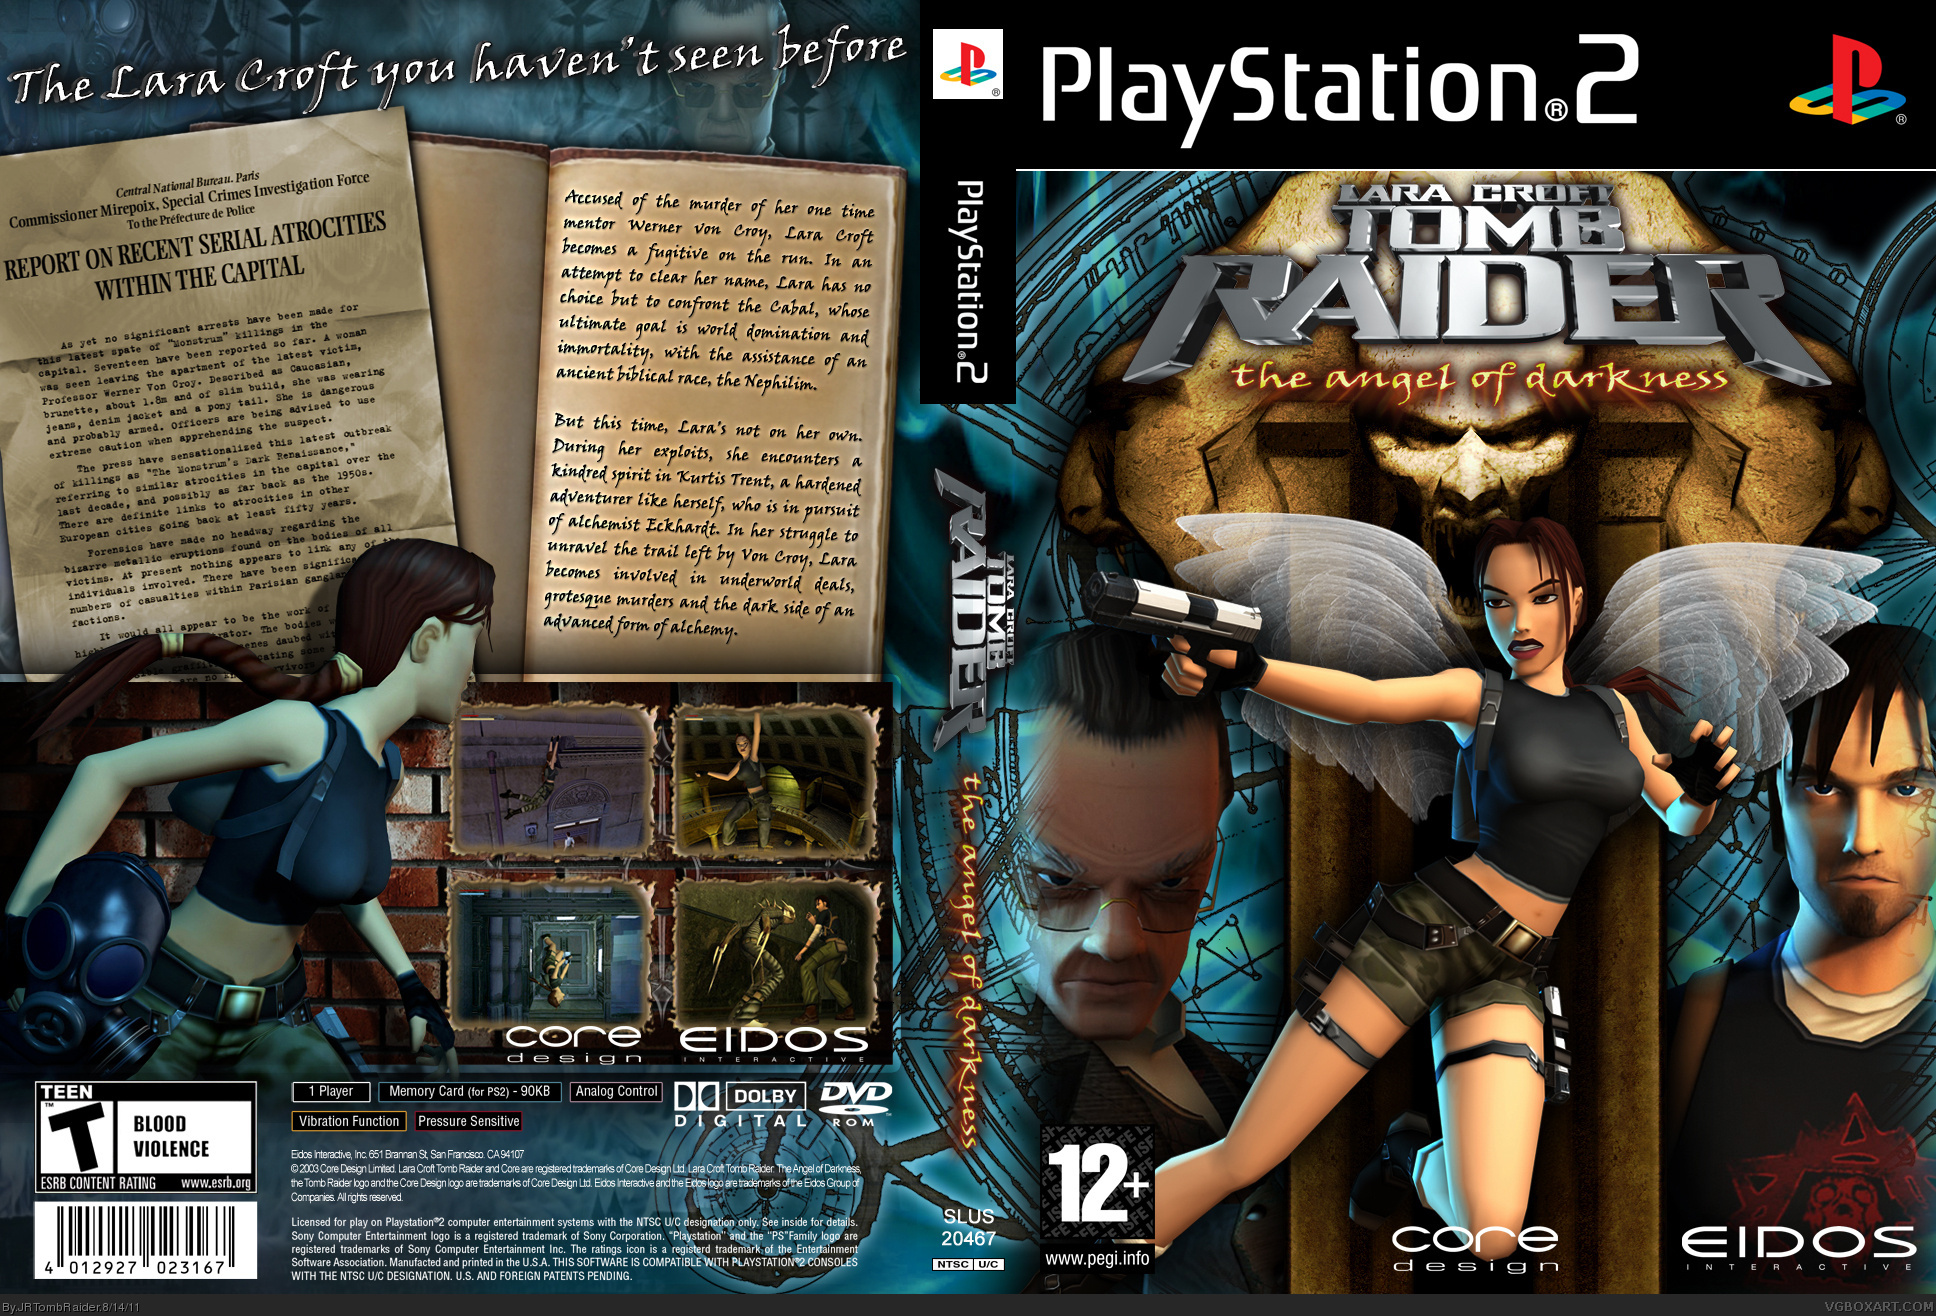 PlayStation 2 » Tomb Raider: The Angel Of Darkness Box Cover ? ?